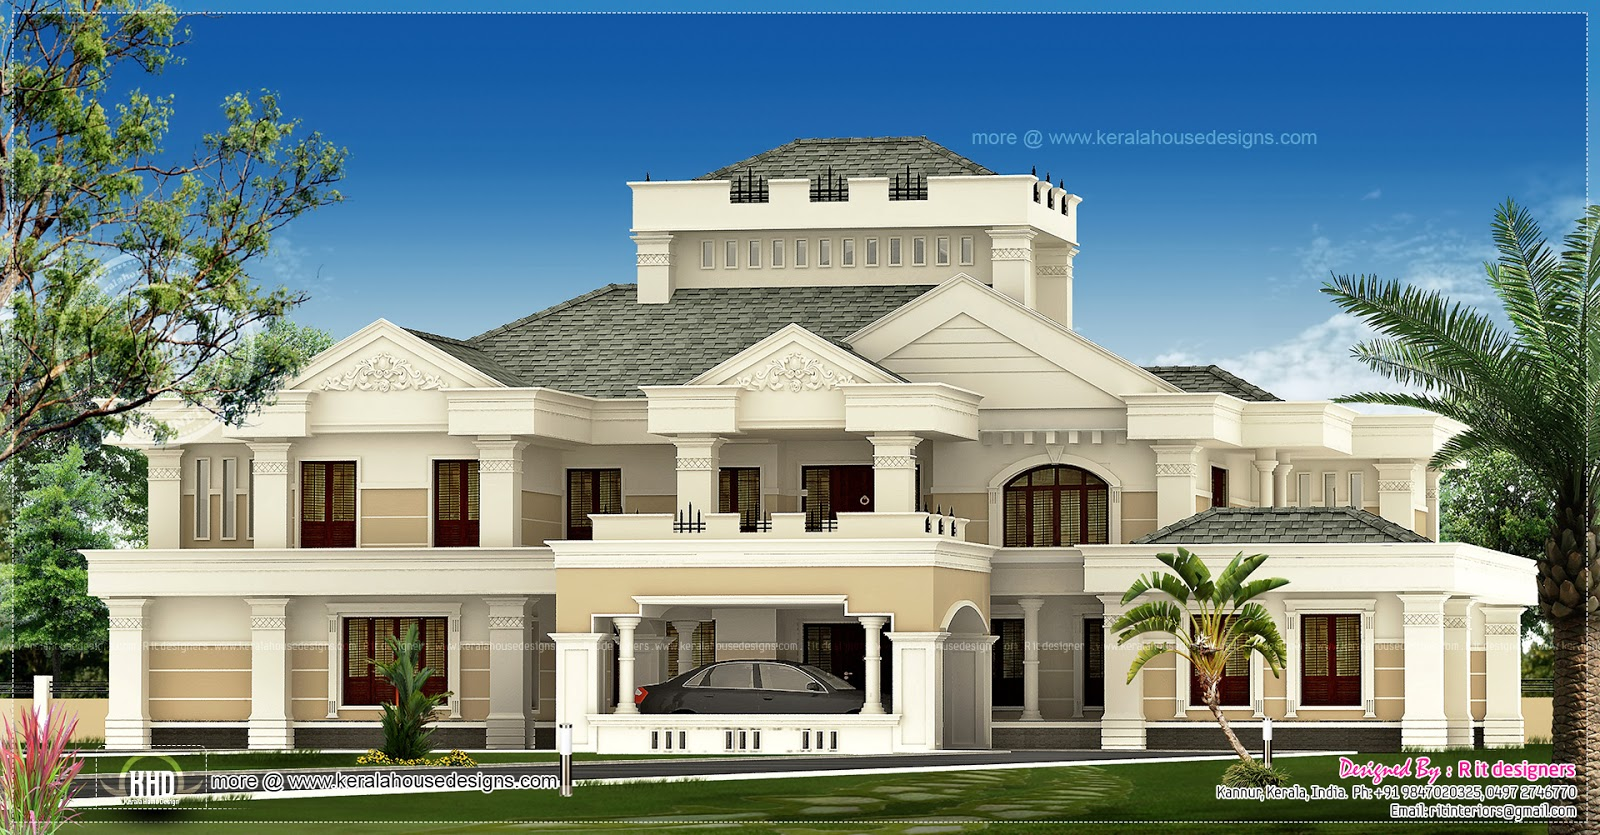 Super luxury kerala house exterior house design plans for Kerala house photos